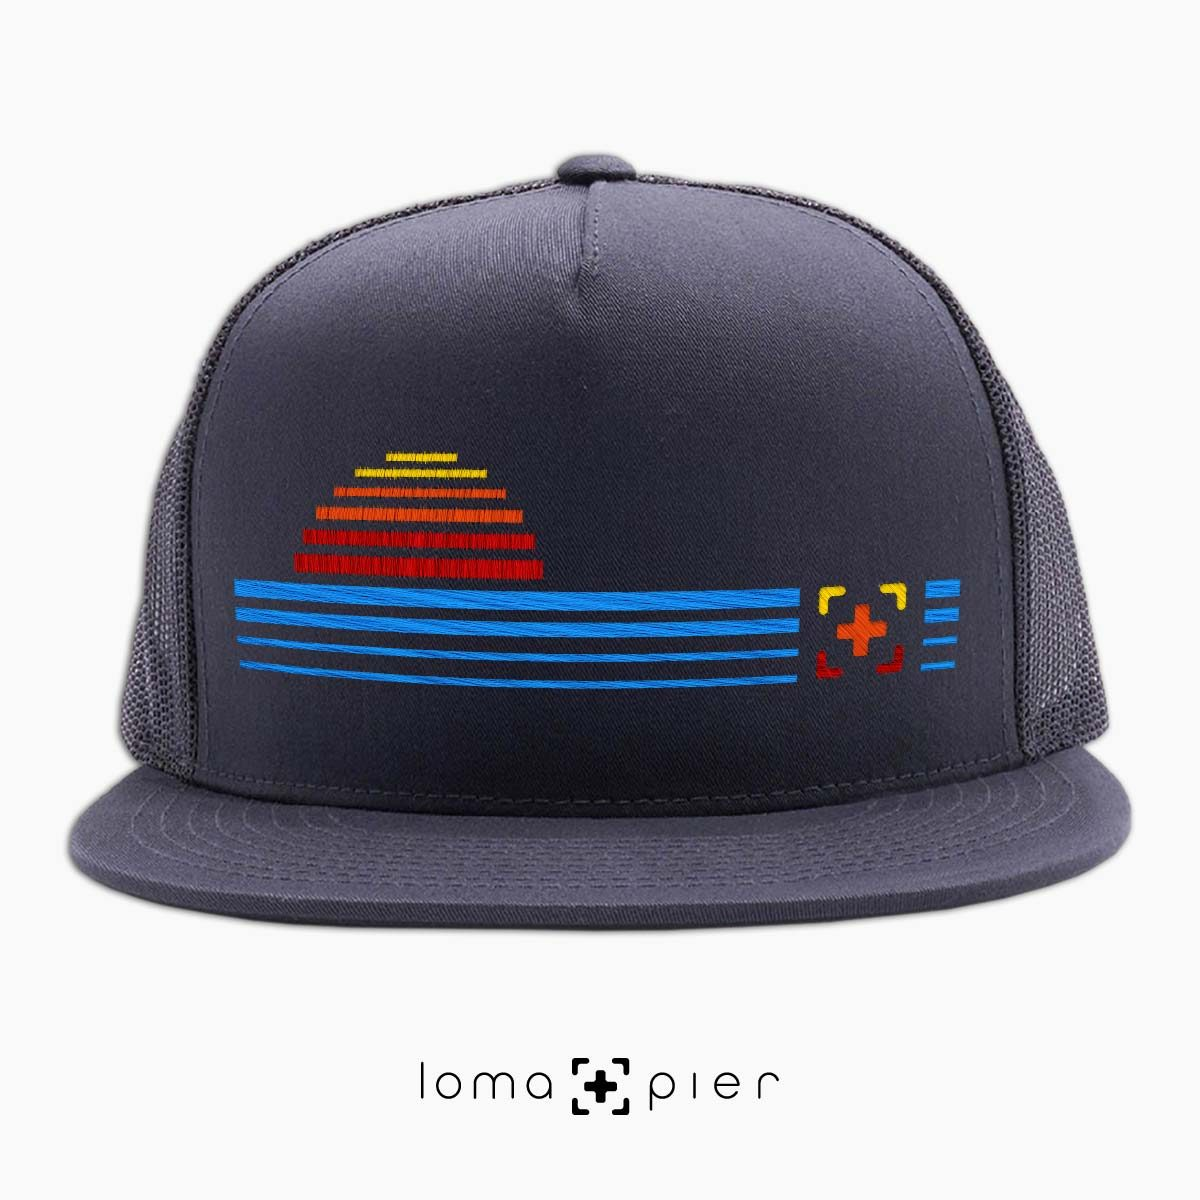 DIGITAL SUNSET icon netback hat in charcoal by loma+pier hat store